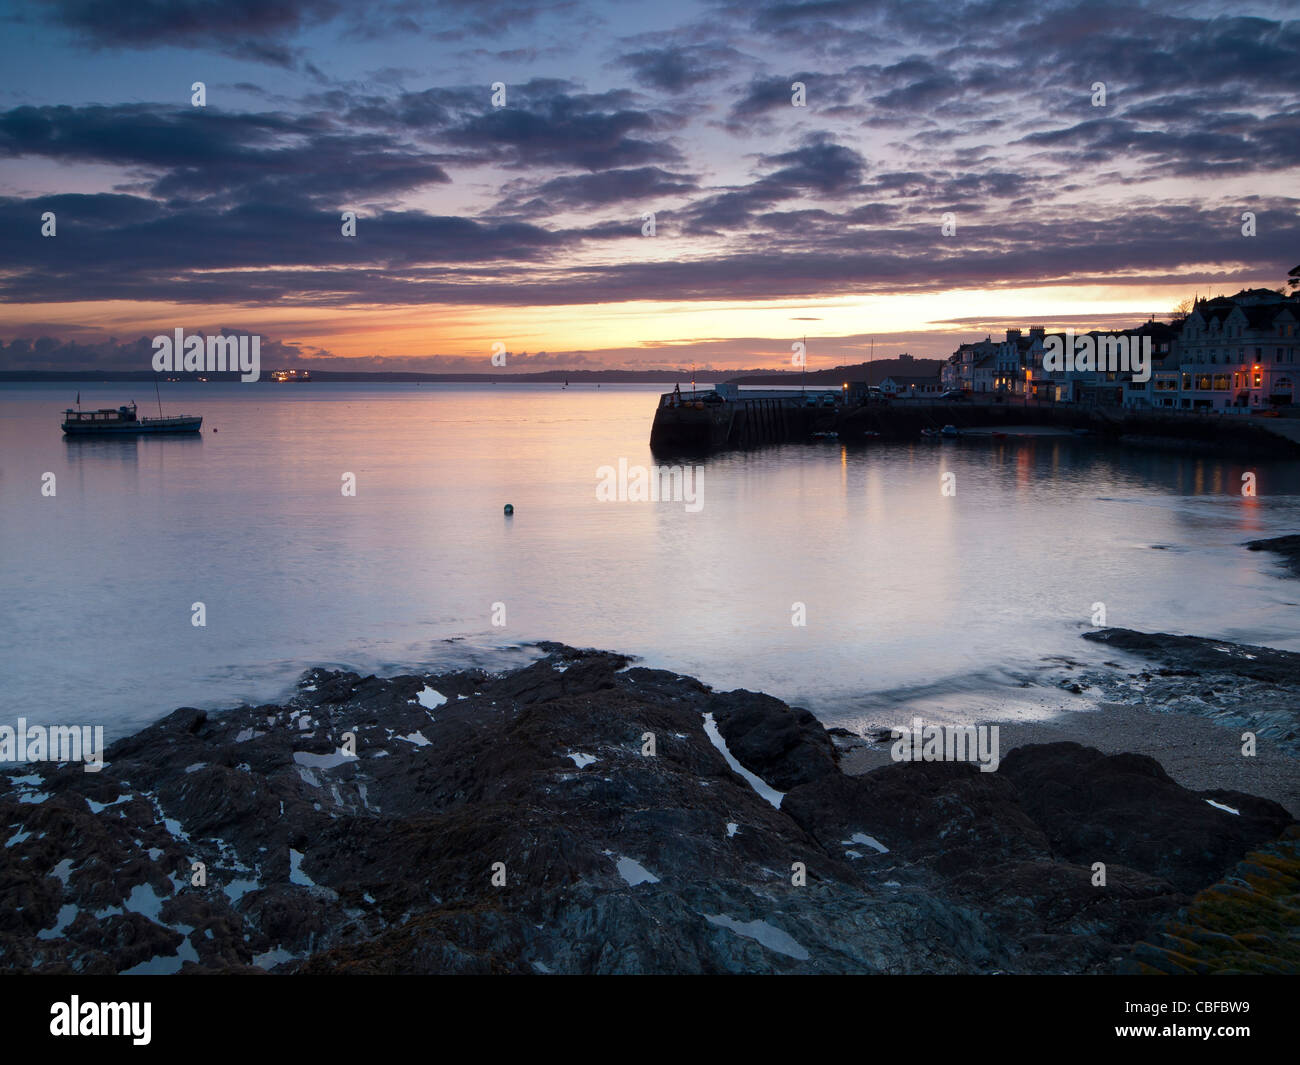 Crépuscule à St Mawes Cornwall England UK Photo Stock